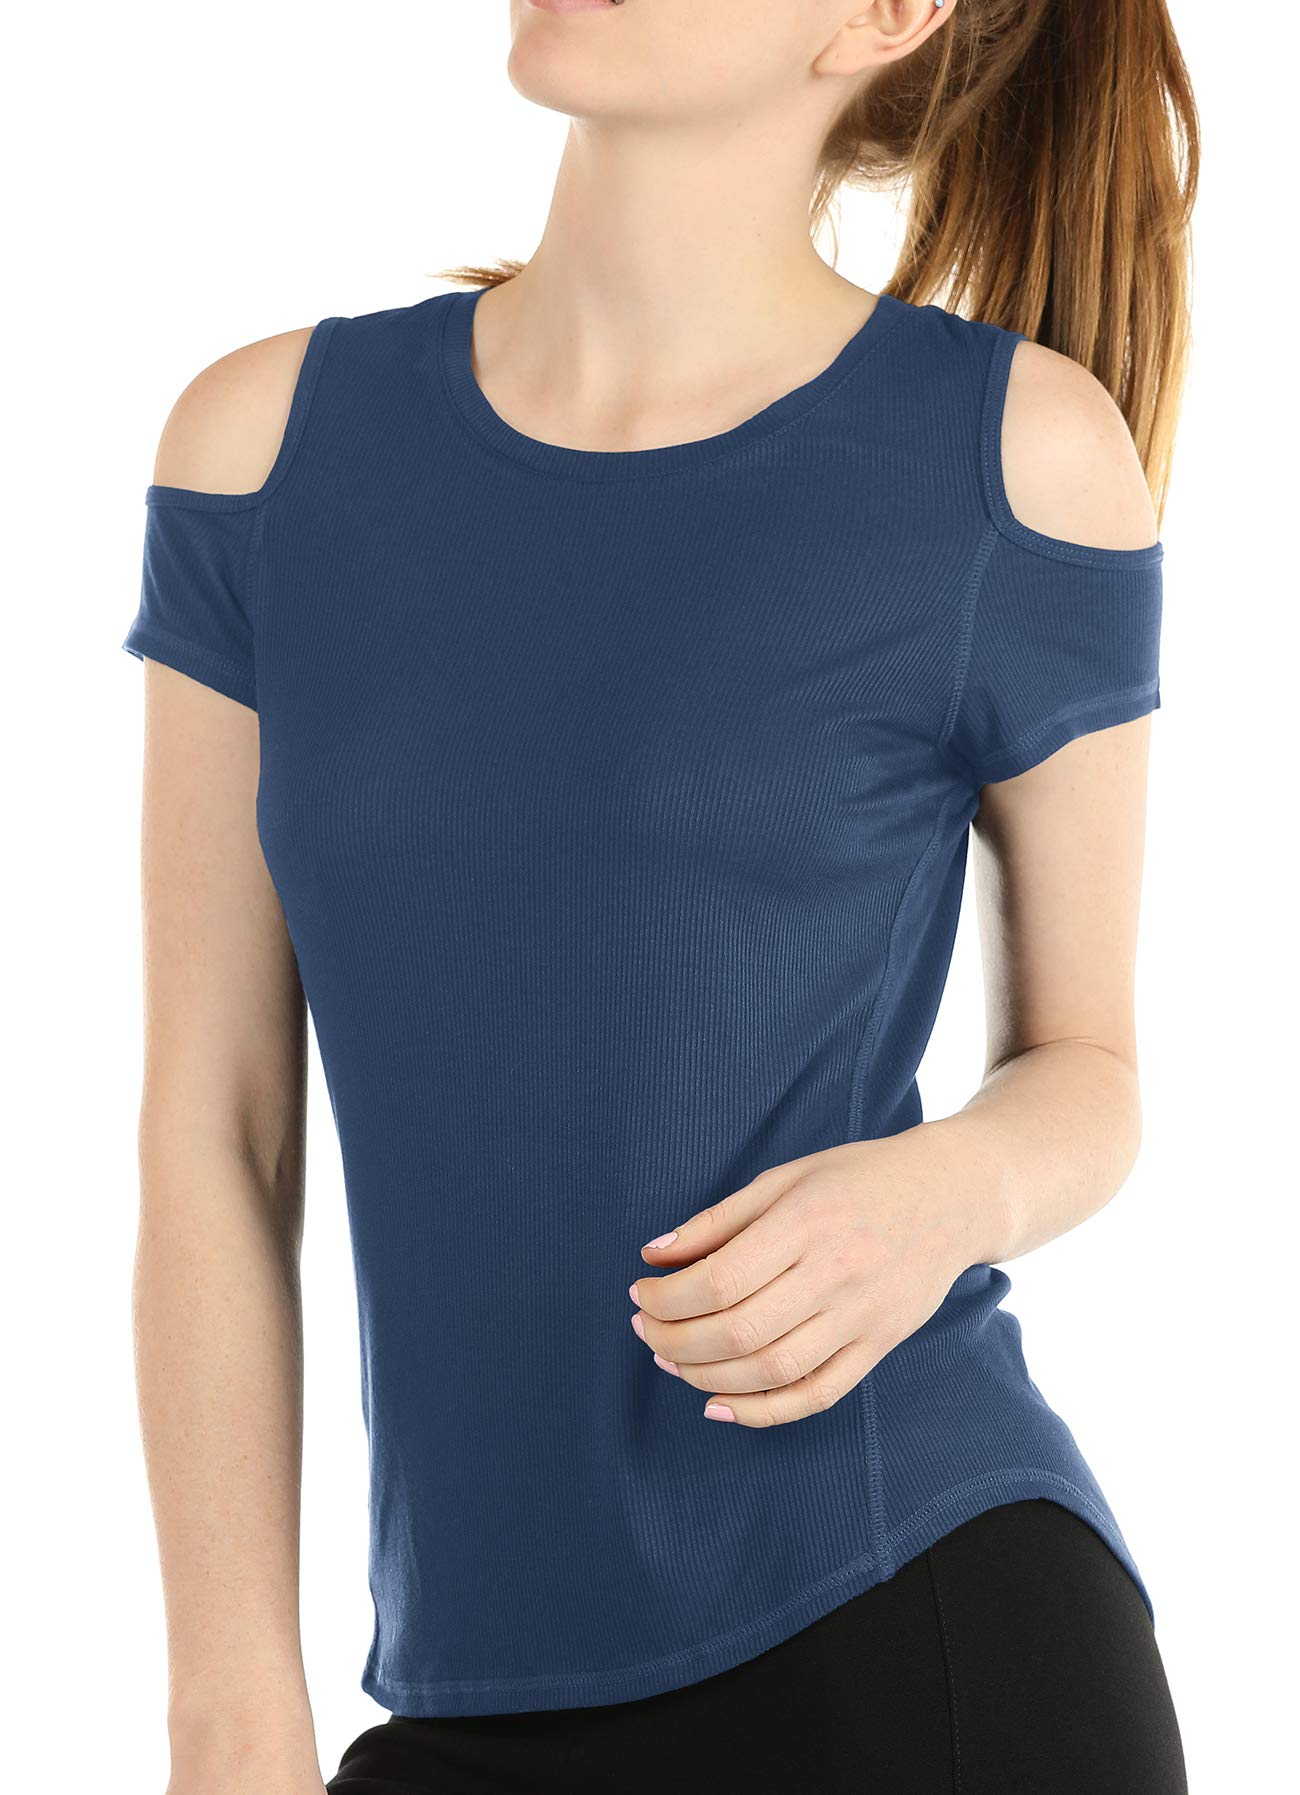 Melpoint Yoga Tops for Women - Cold Shoulder Short Sleeves Ribbed Casual T-Shirts